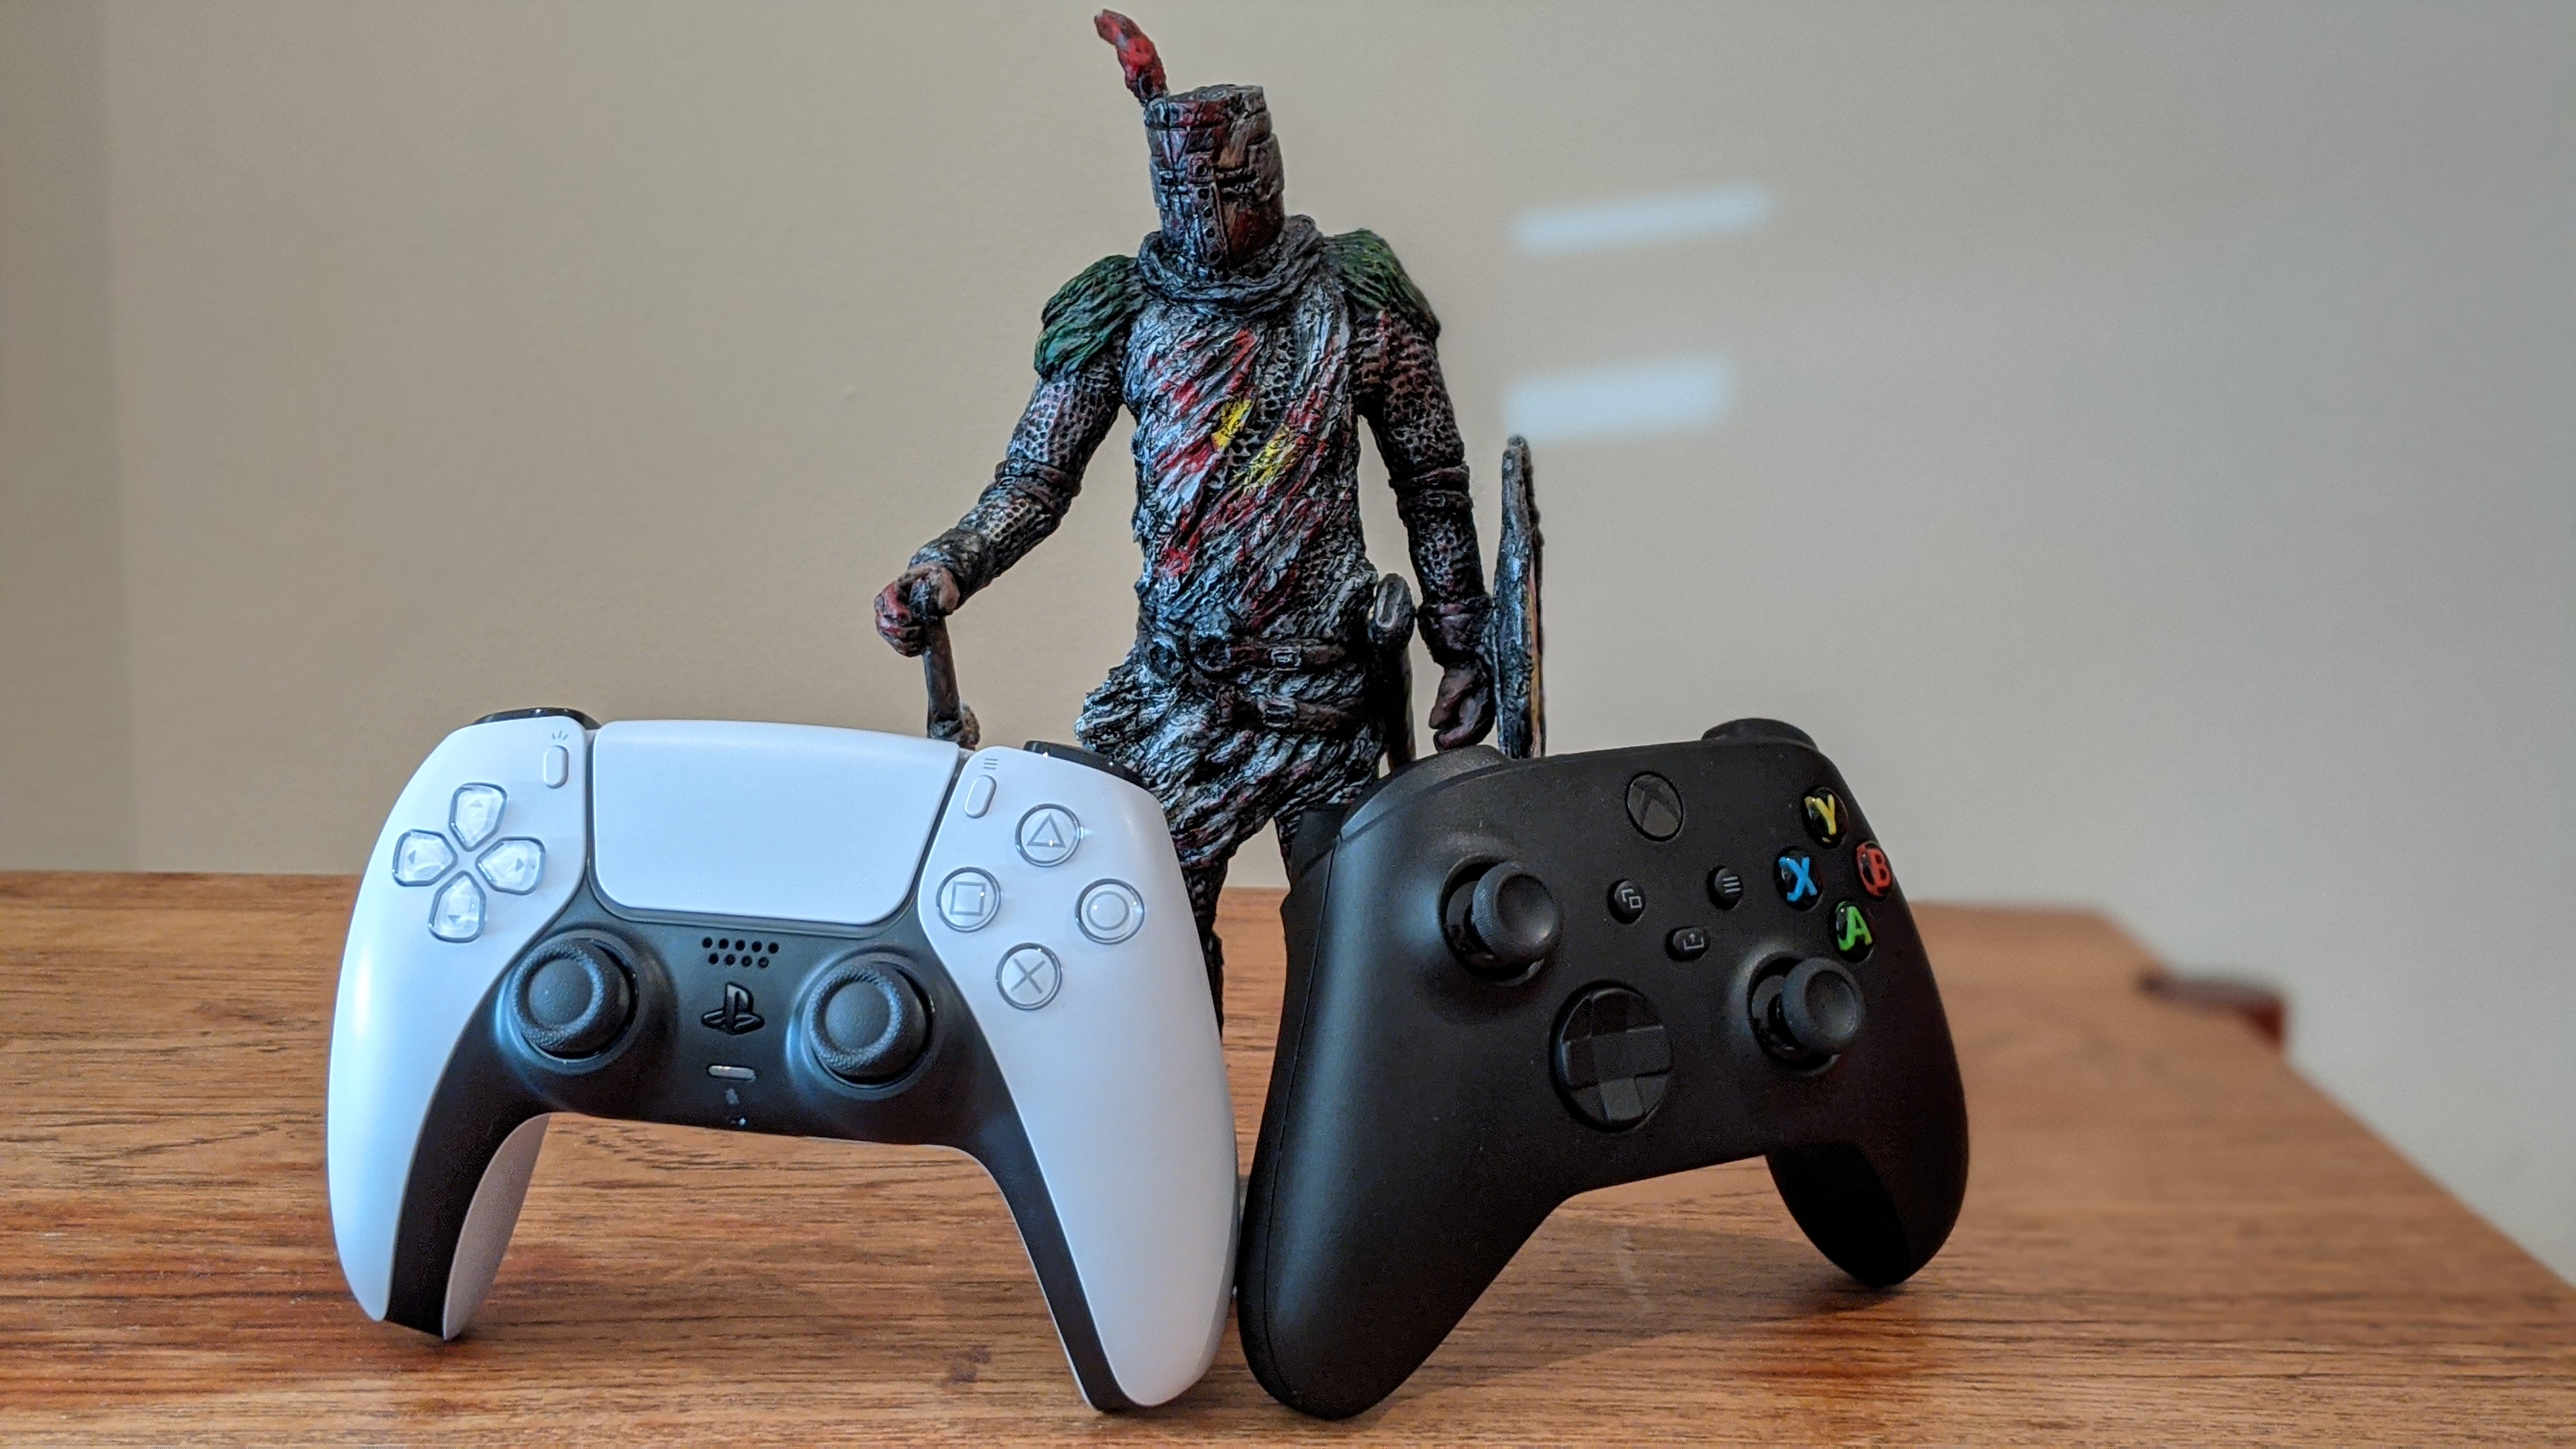 Nvidia Shield devices are now Xbox Series X/S and DualSense controller friendly